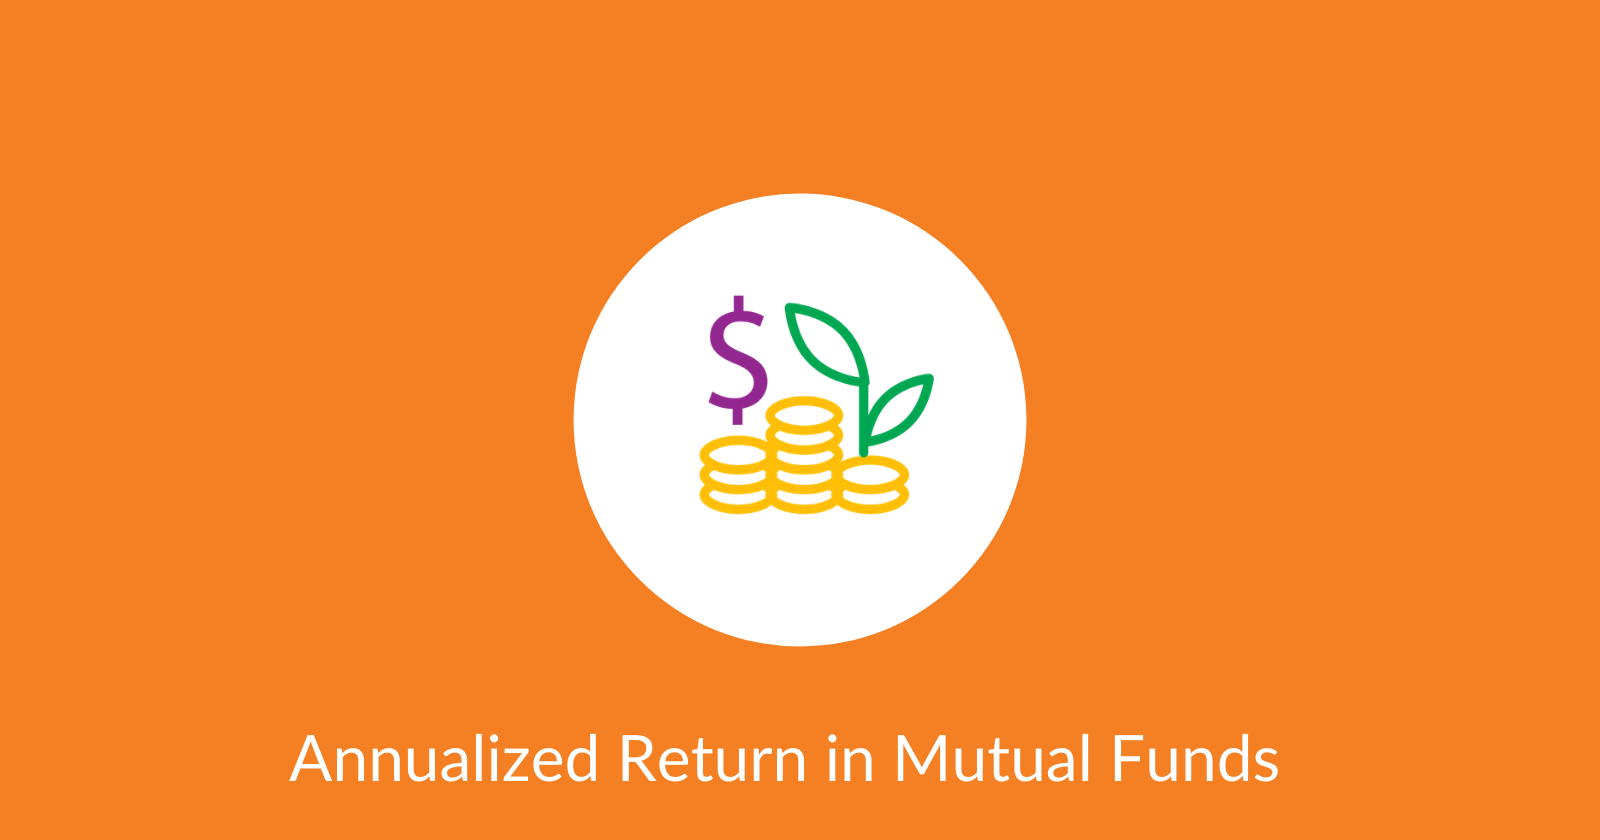 Annualized Return in Mutual Funds